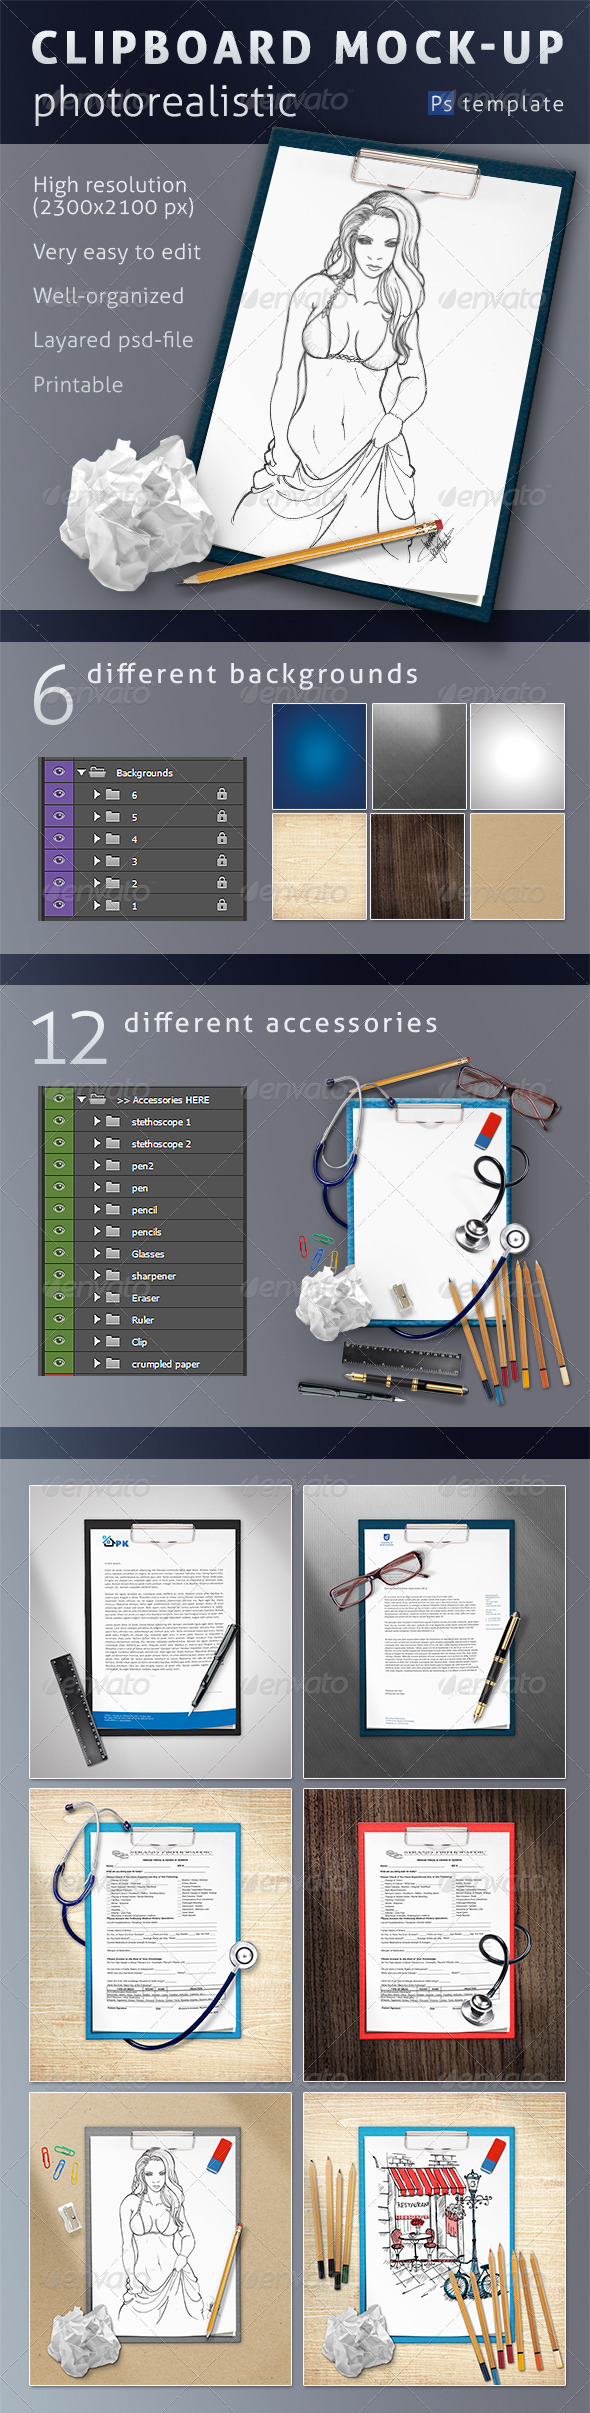 GraphicRiver Photorealistic Clipboard Mock-up 6925406